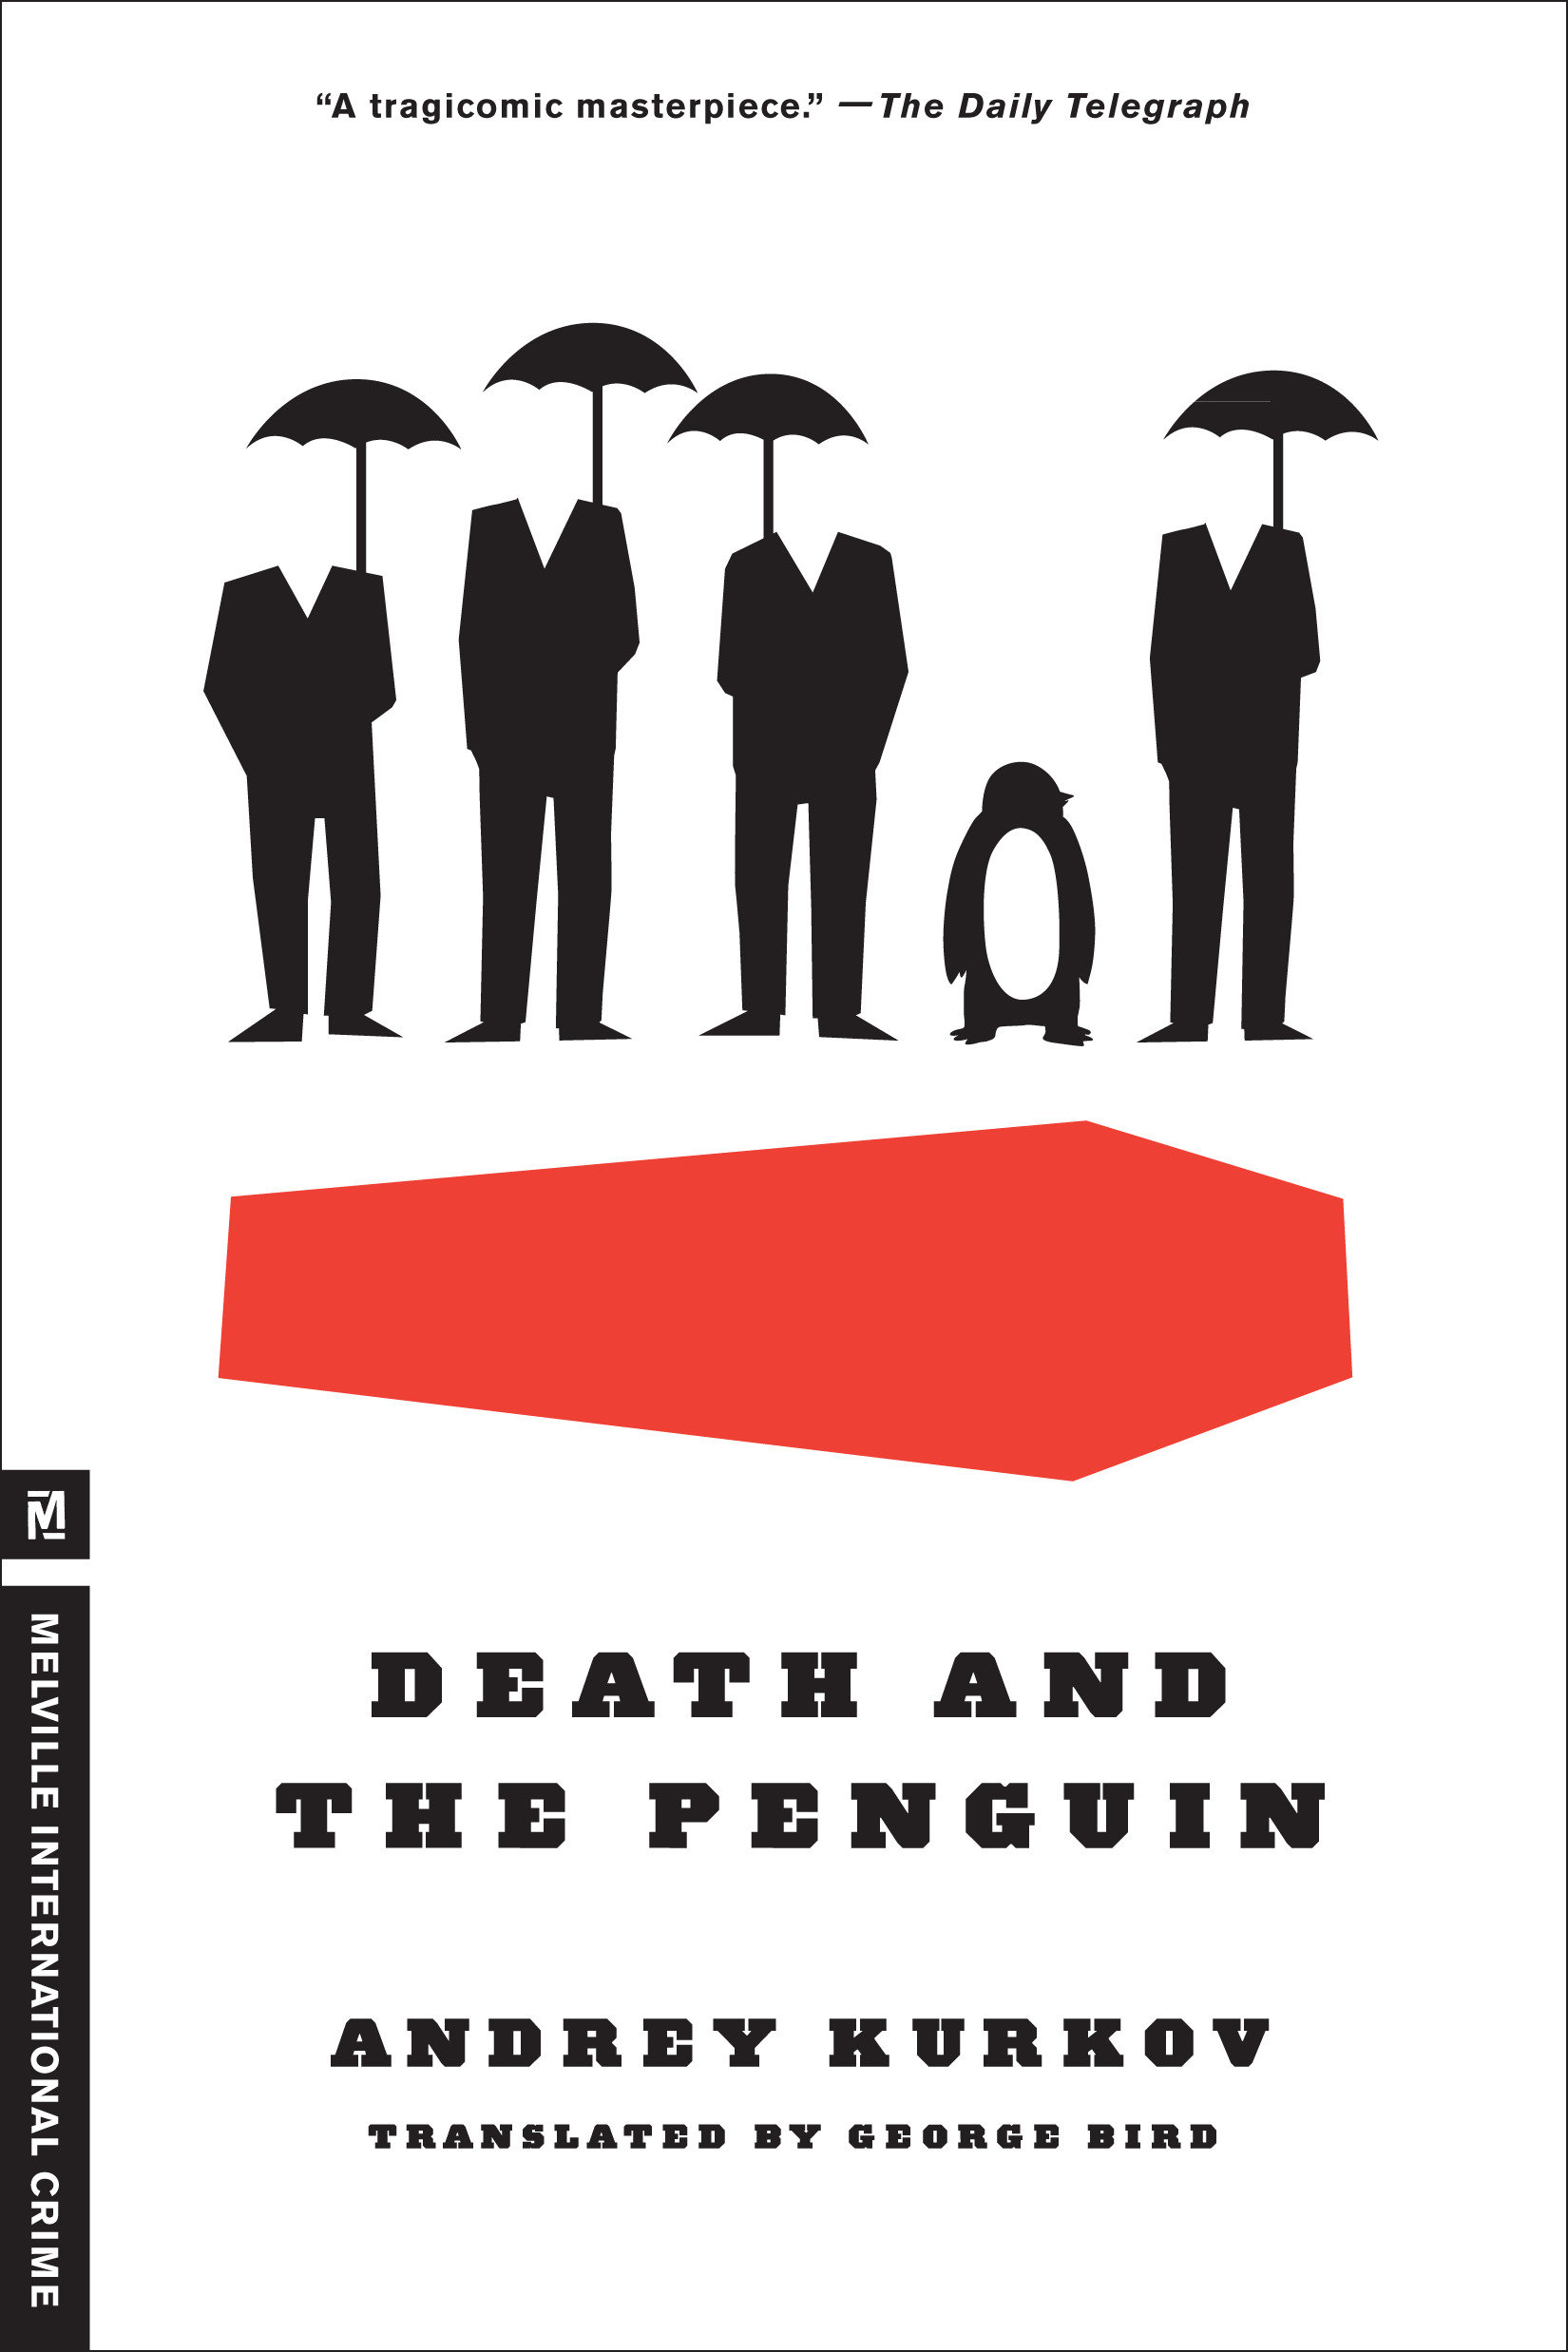 Death and the penguin cover image